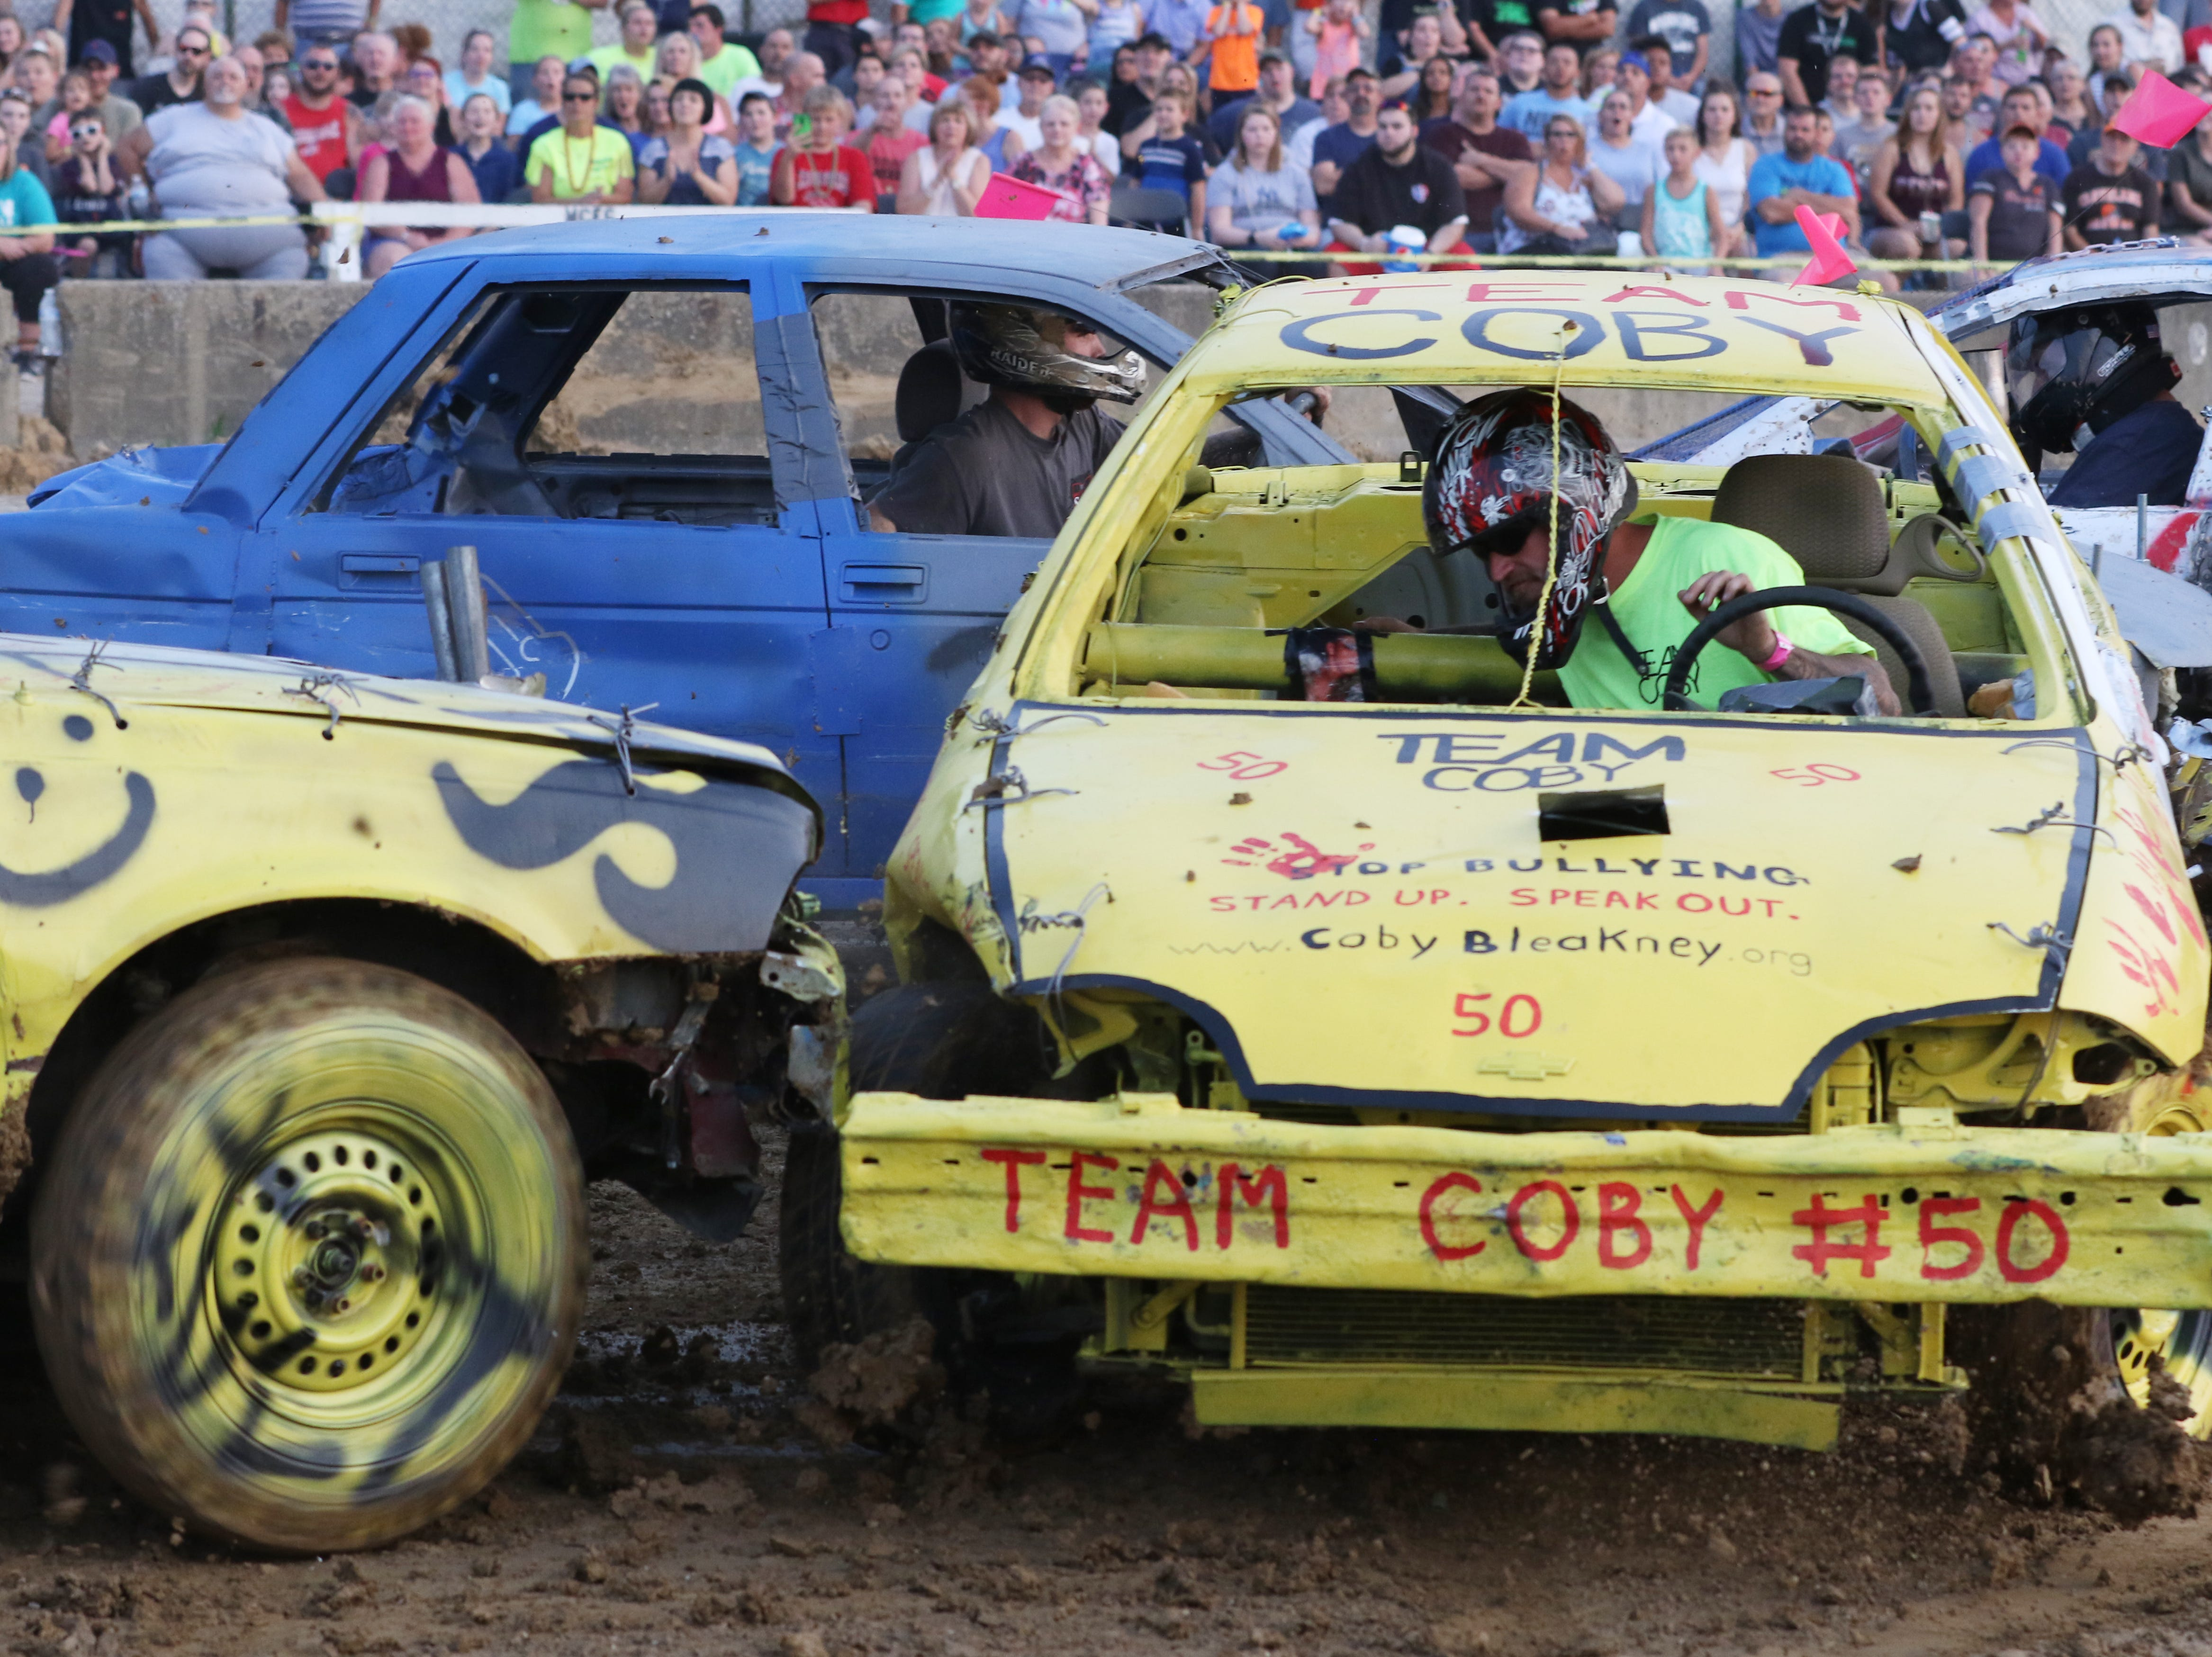 Ronald Miller in his 50 car gets hit during the Sarge and Sons Demolition Derby at the Muskingum County Fair on Tuesday.